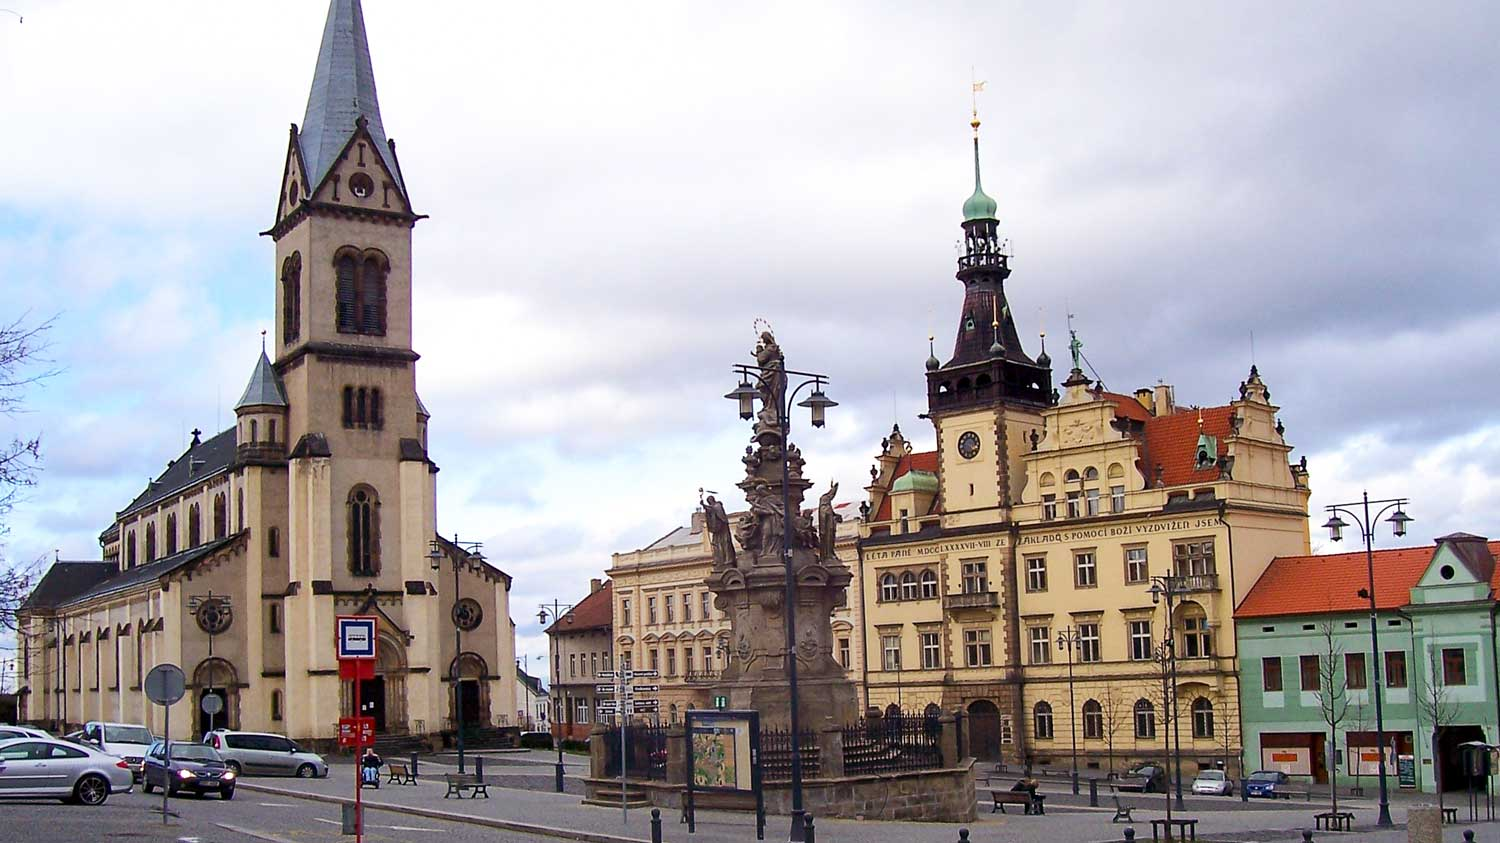 View of the square, the church, and the city hall in Kladno, Cezch Republic